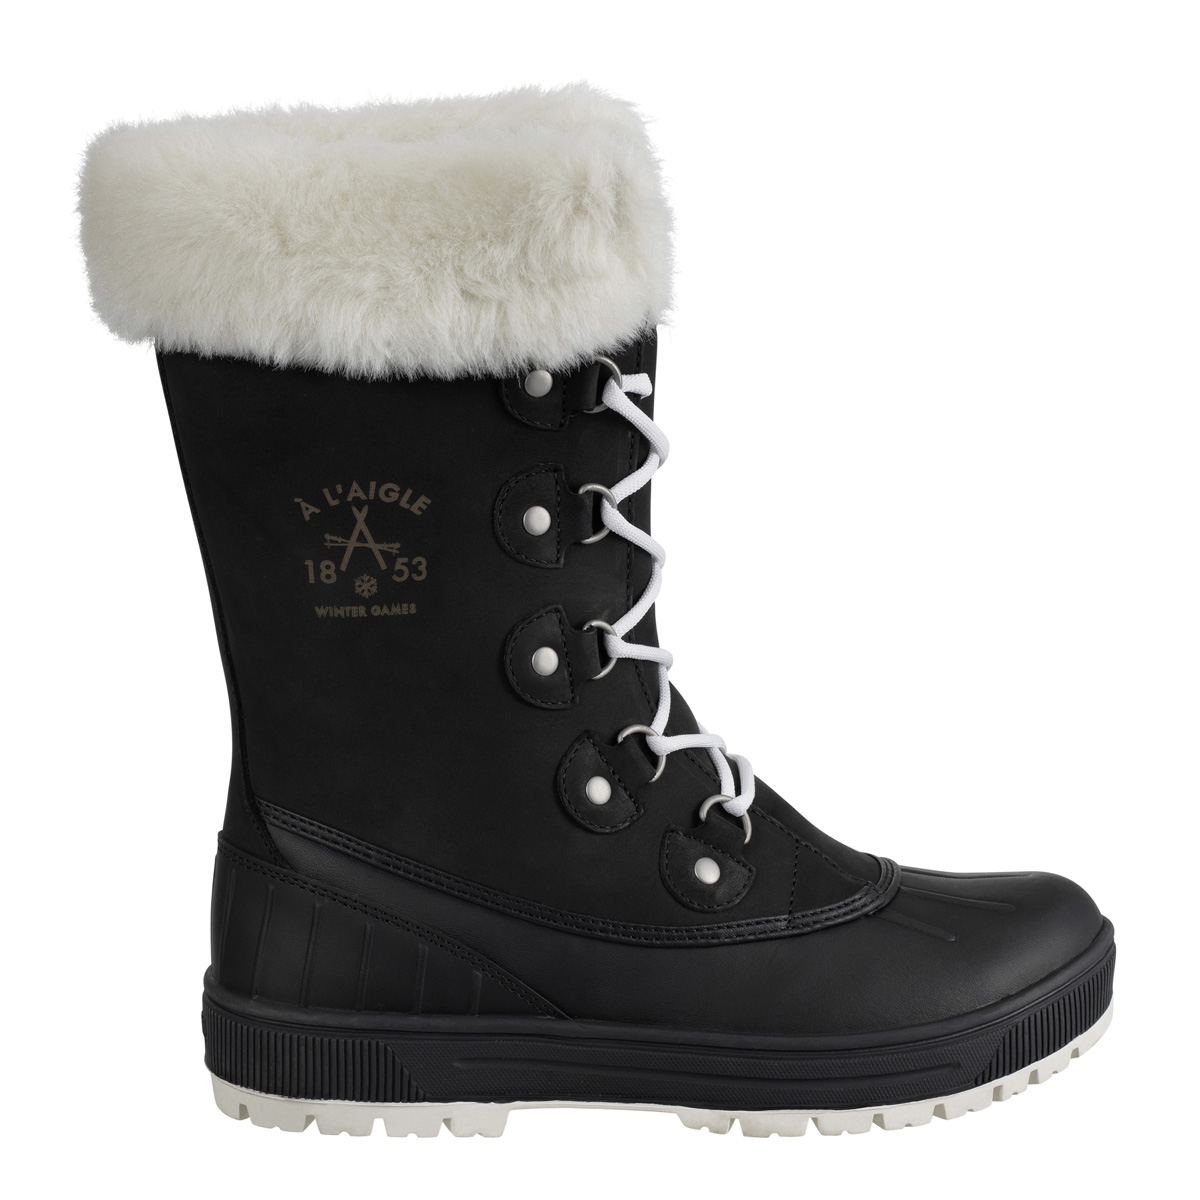 Black Snow Boots For Women - Yu Boots